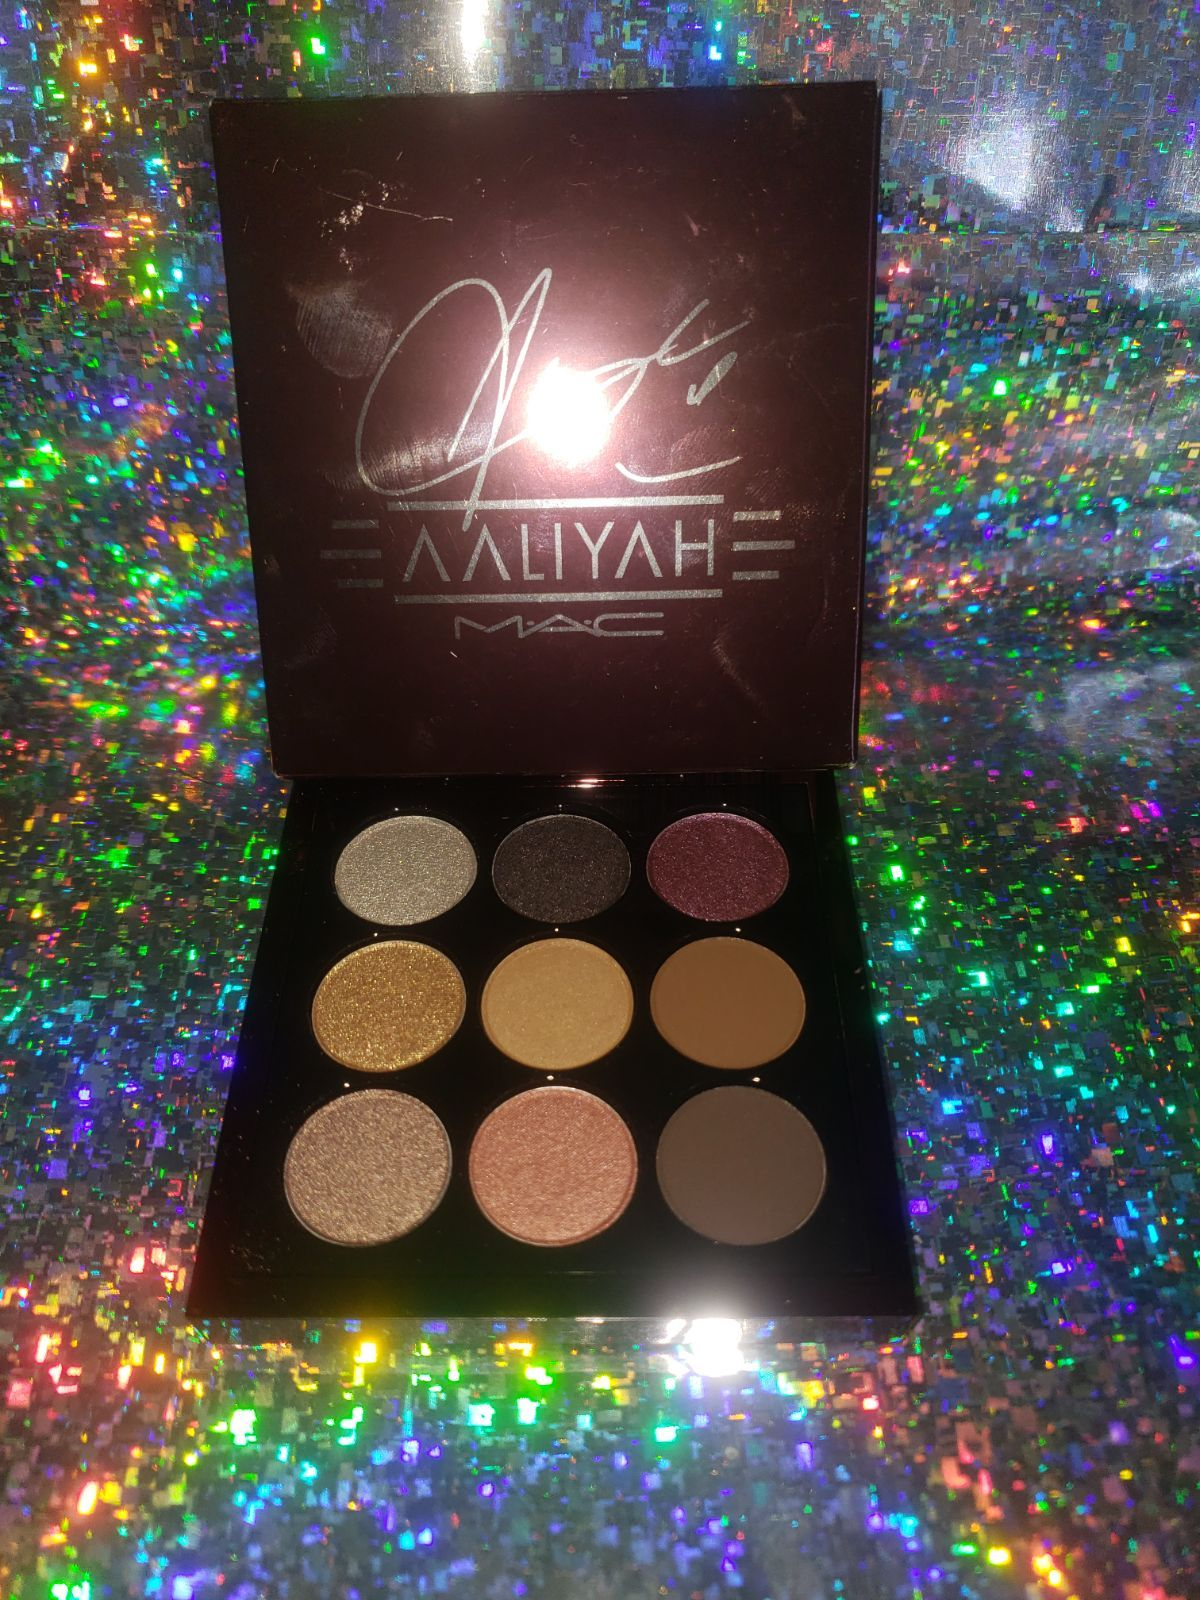 New in Box Mac Aaliyah (With images) Mac cosmetics